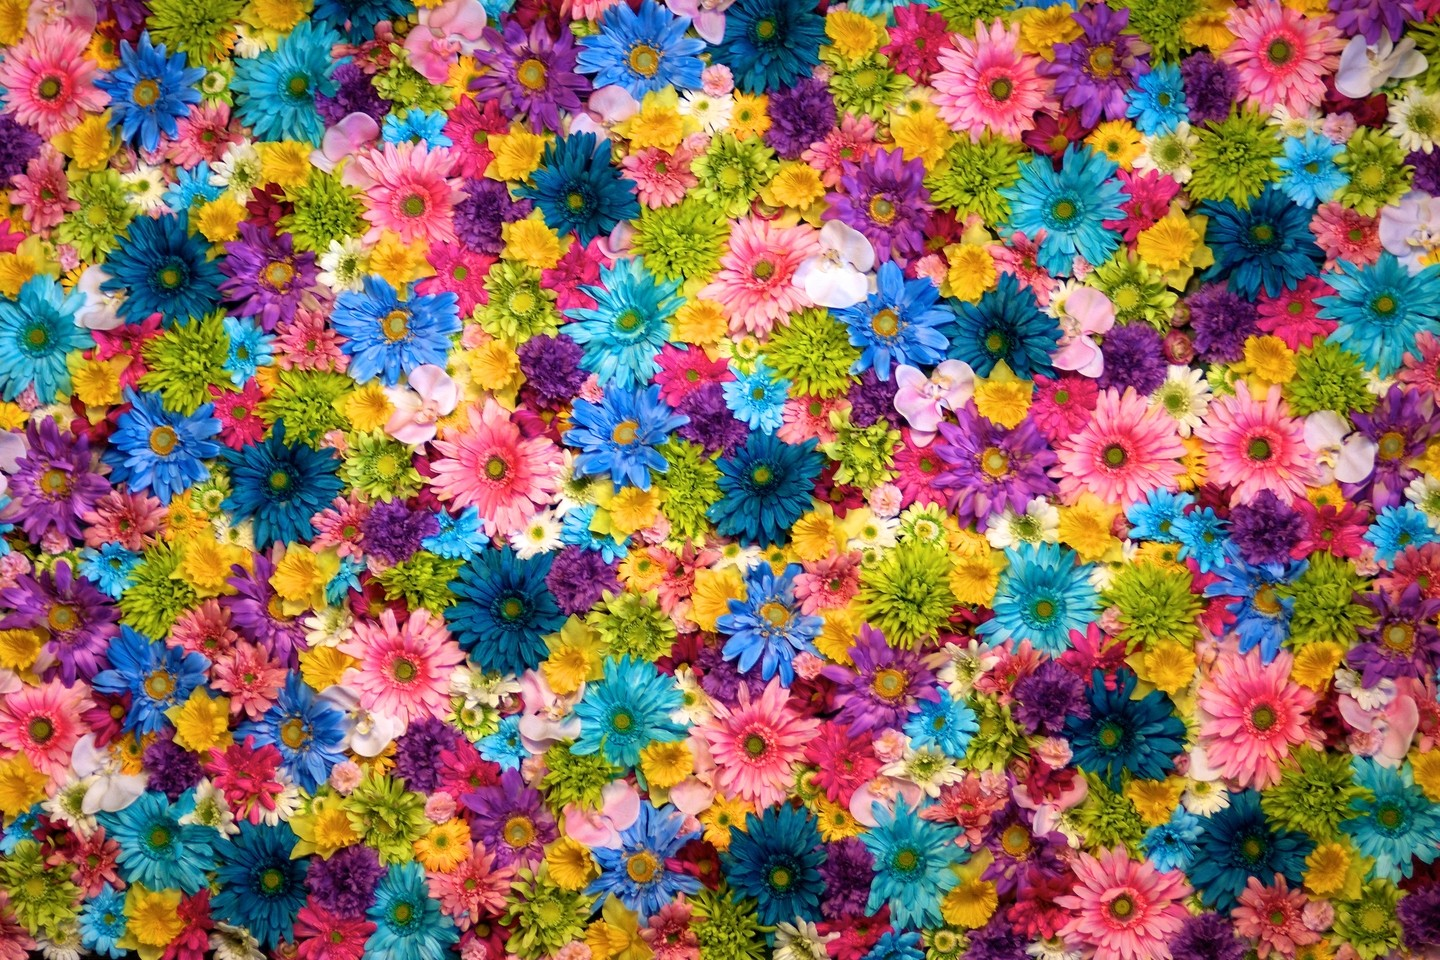 Colorful Flower Wall Ogq Backgrounds Hd